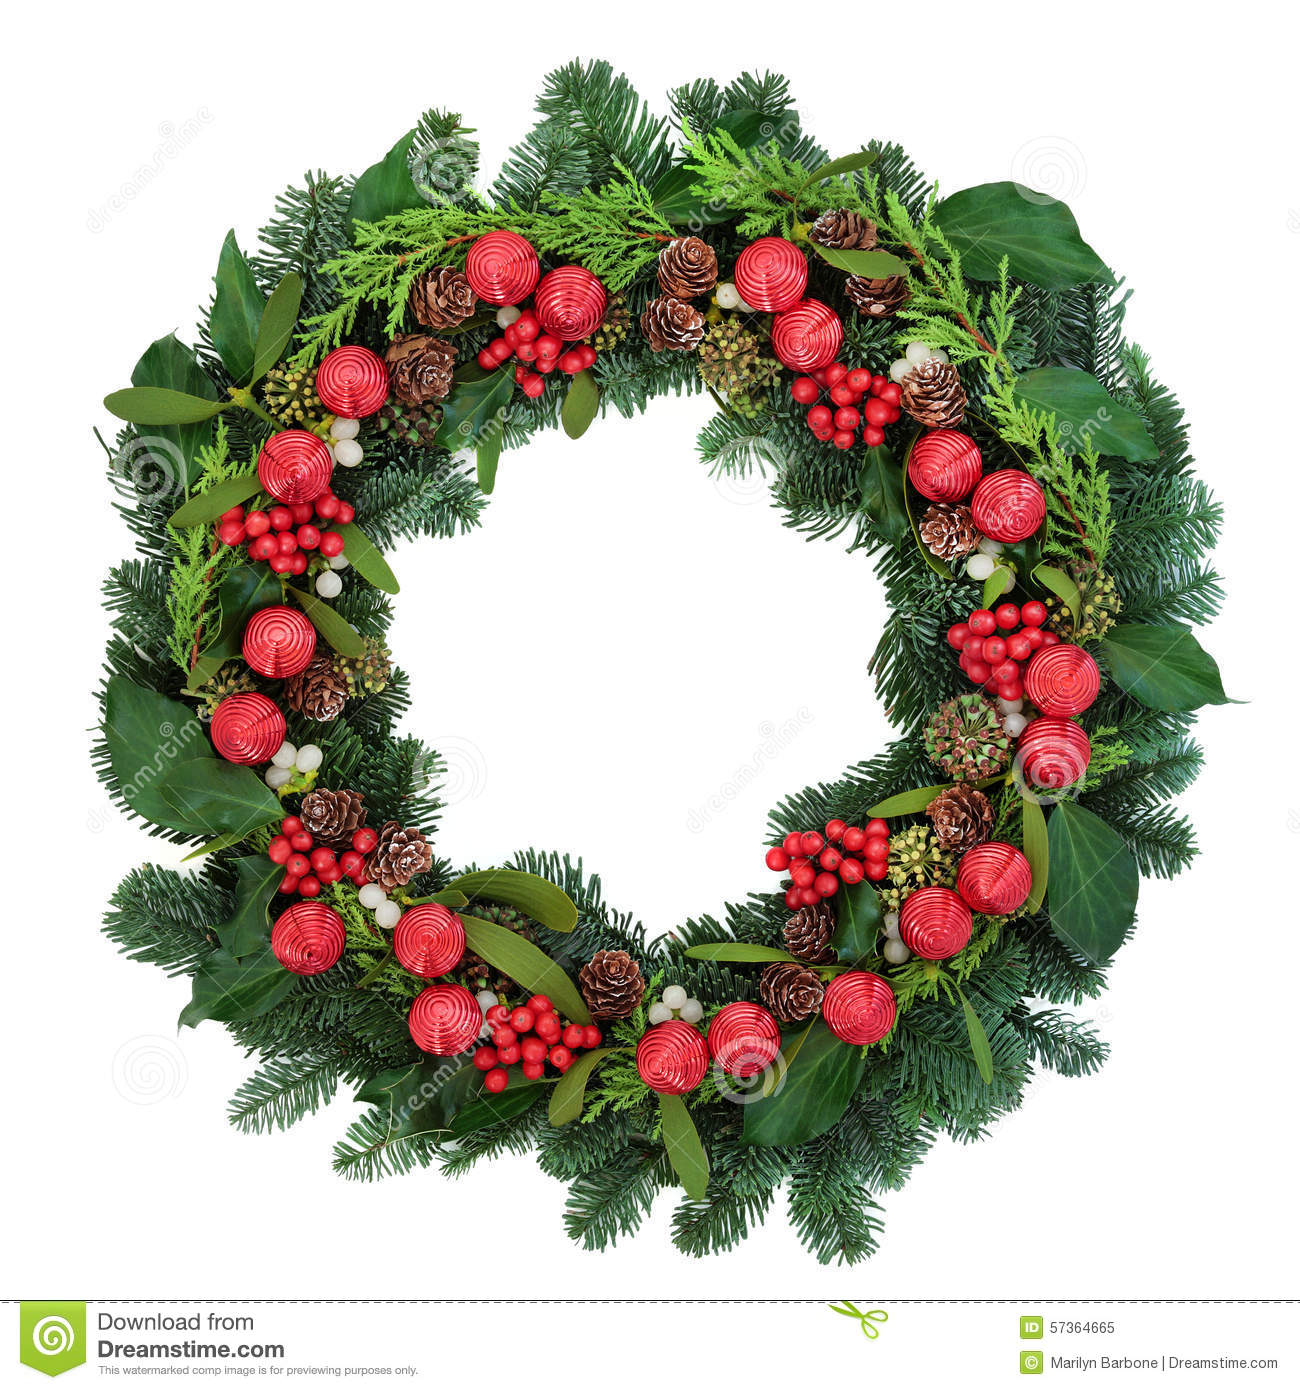 download decorative christmas wreath stock image image of noel greeting 57364665